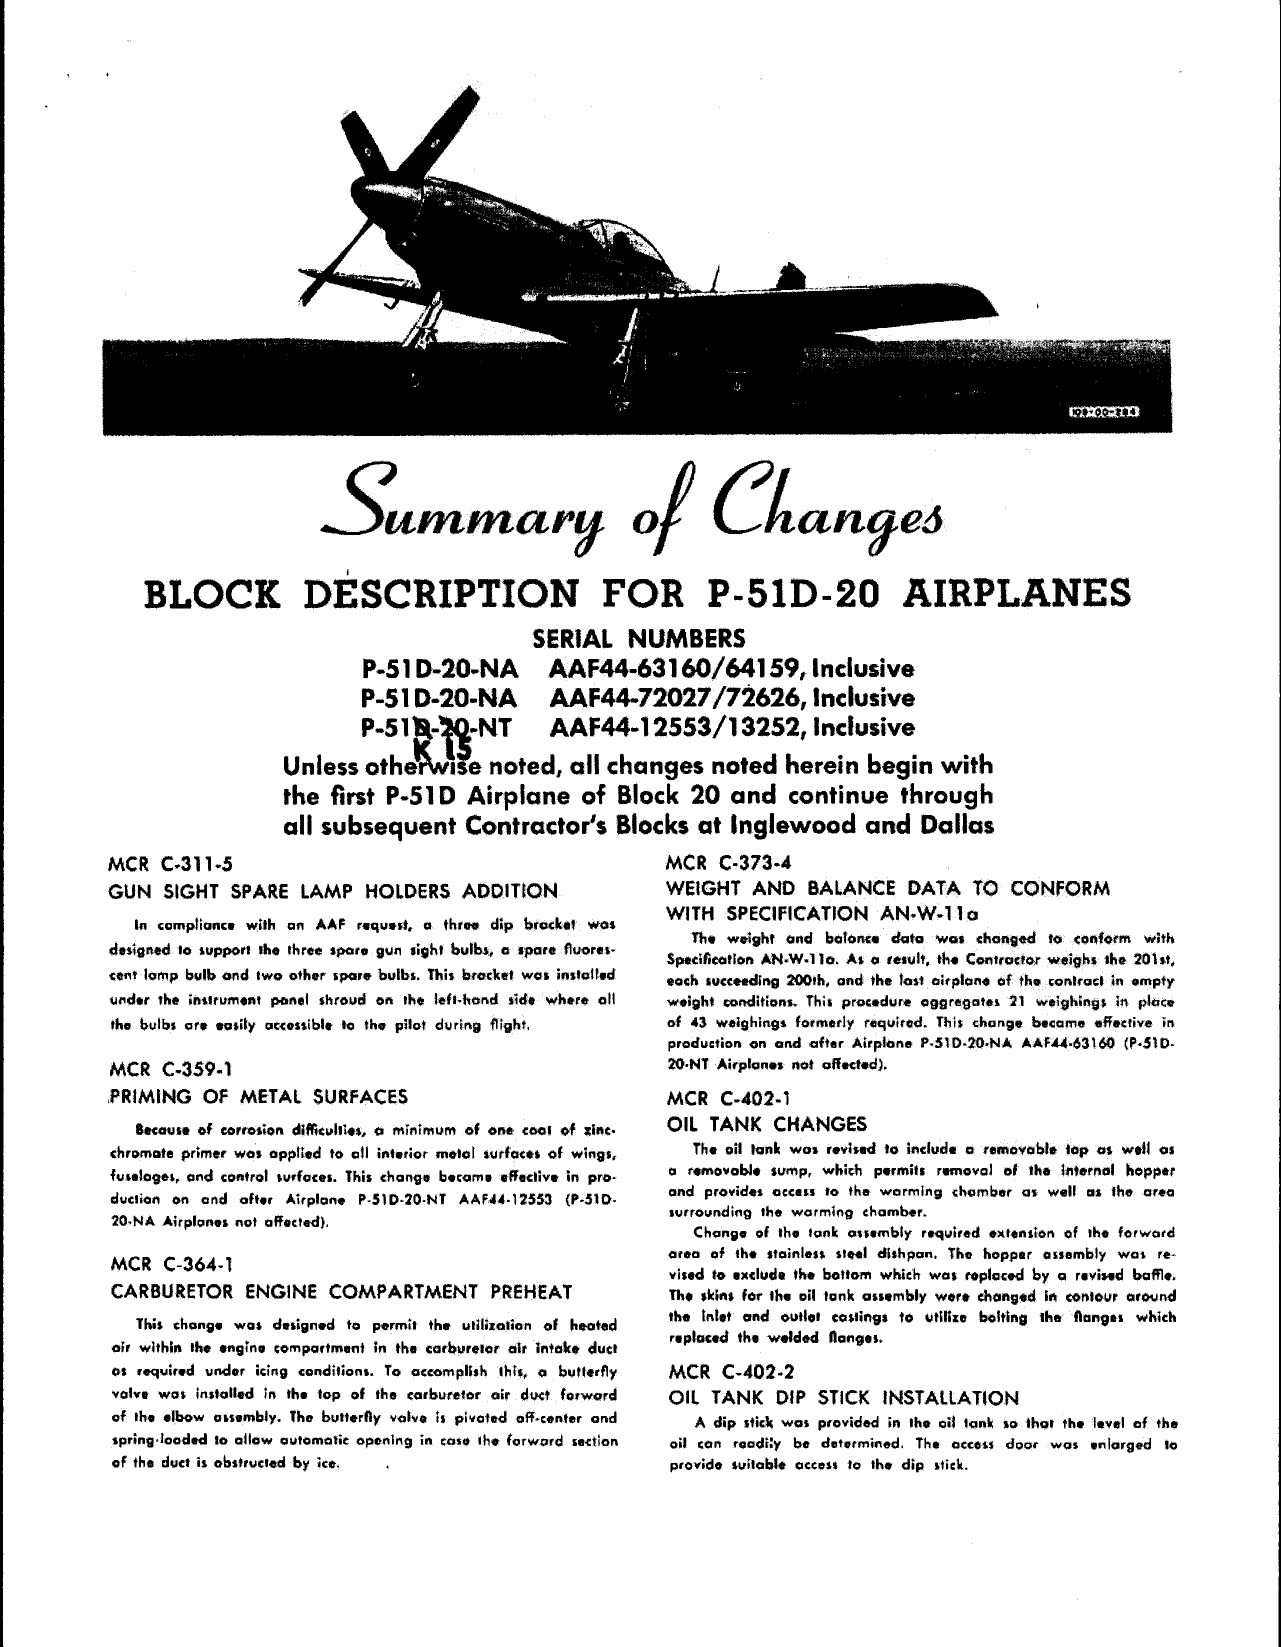 Sample page 1 from AirCorps Library document: Summary of Changes - Block Description for P-51D-20 Airplanes